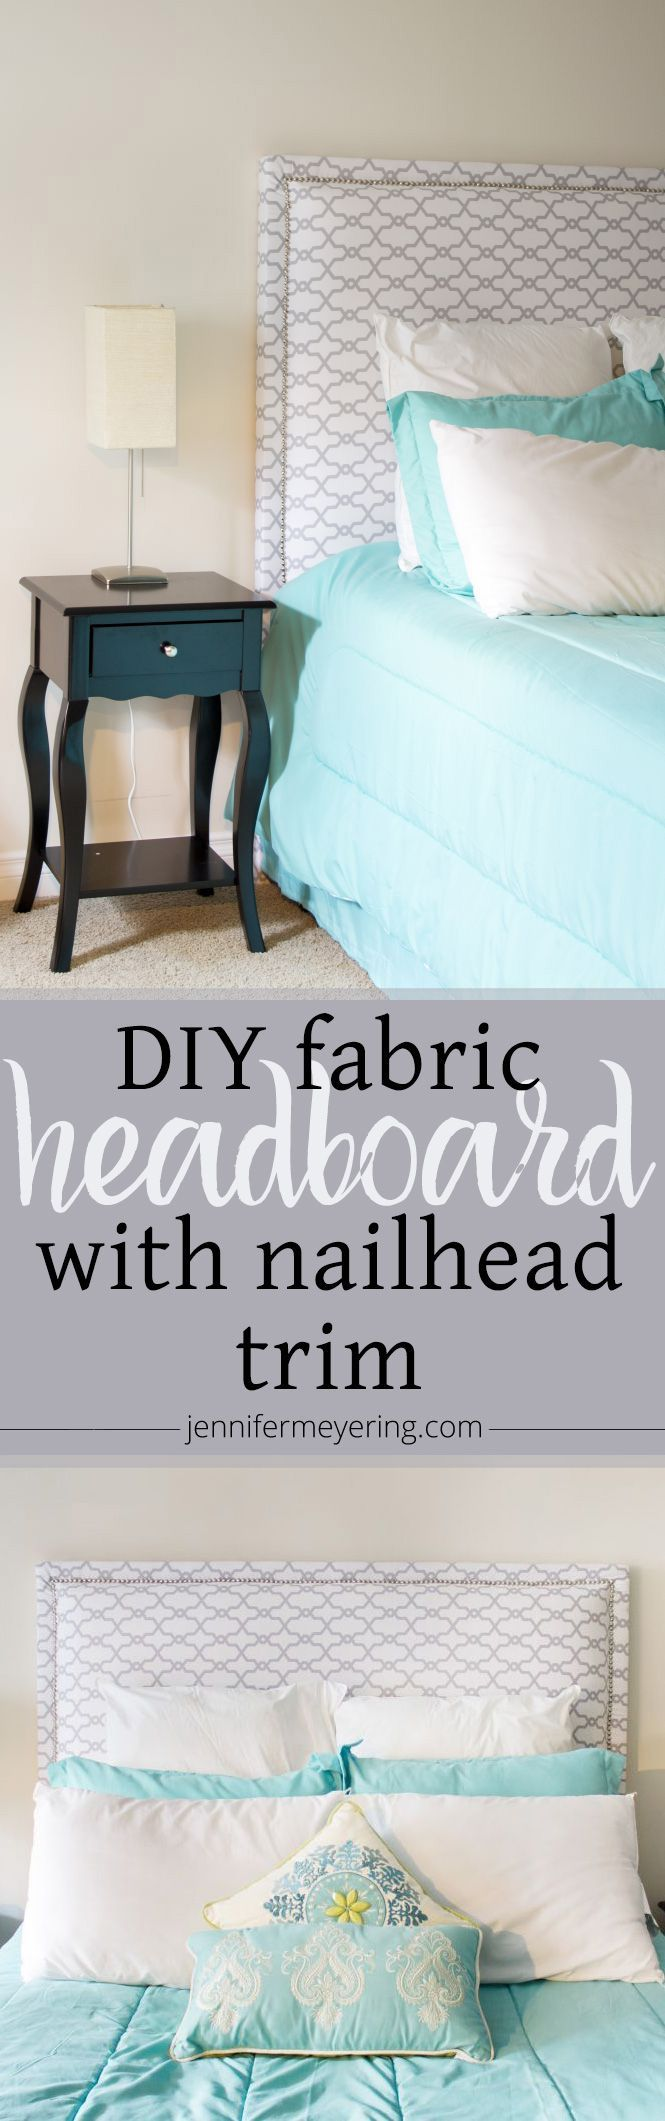 Fabric Headboard with Nailhead Trim -- JenniferMeyering.com